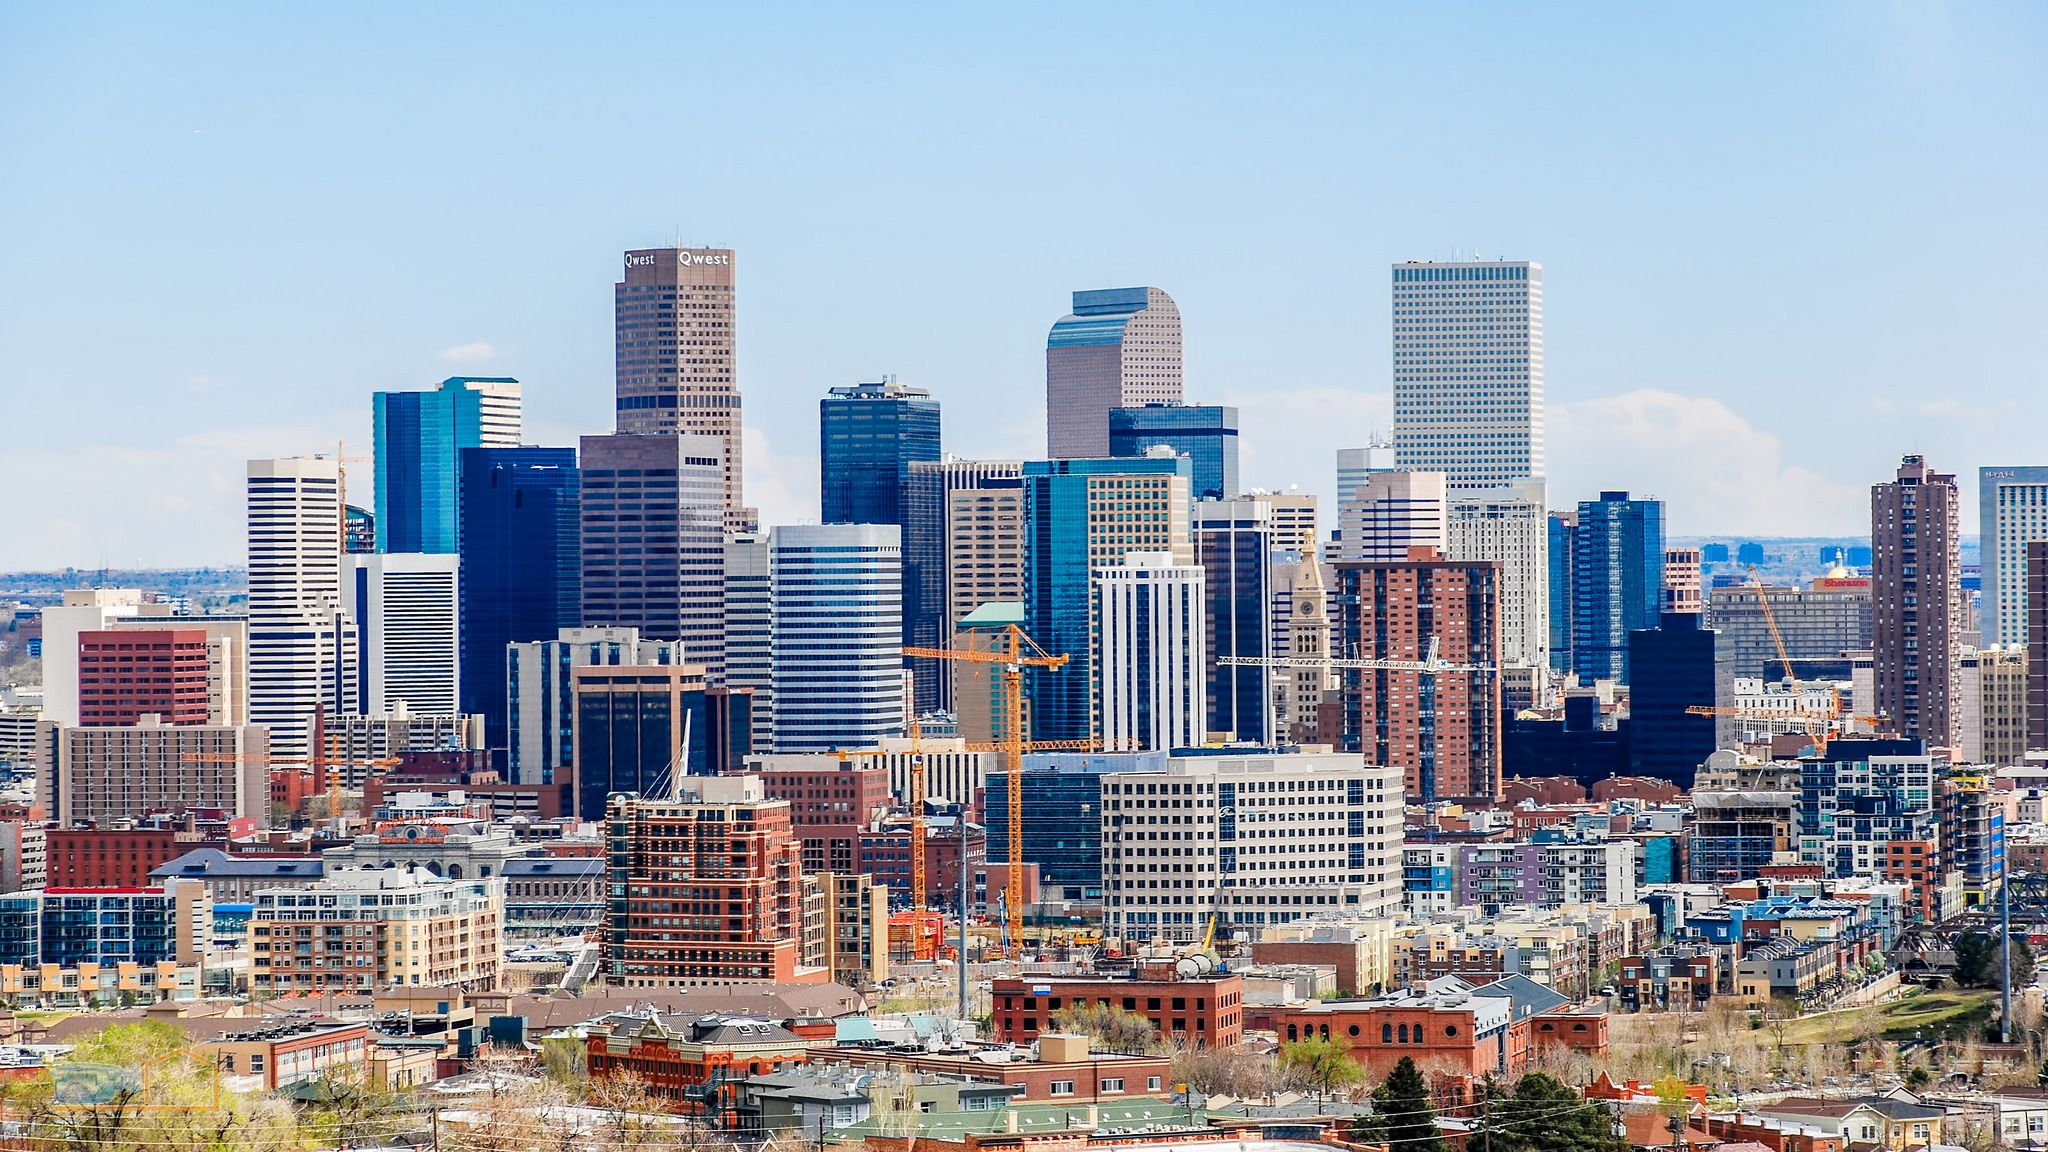 Colorful Denver CO [2048 x 1152]. wallpaper/ background for iPad mini/ air/ 2 / pro/ laptop @dquocbuu